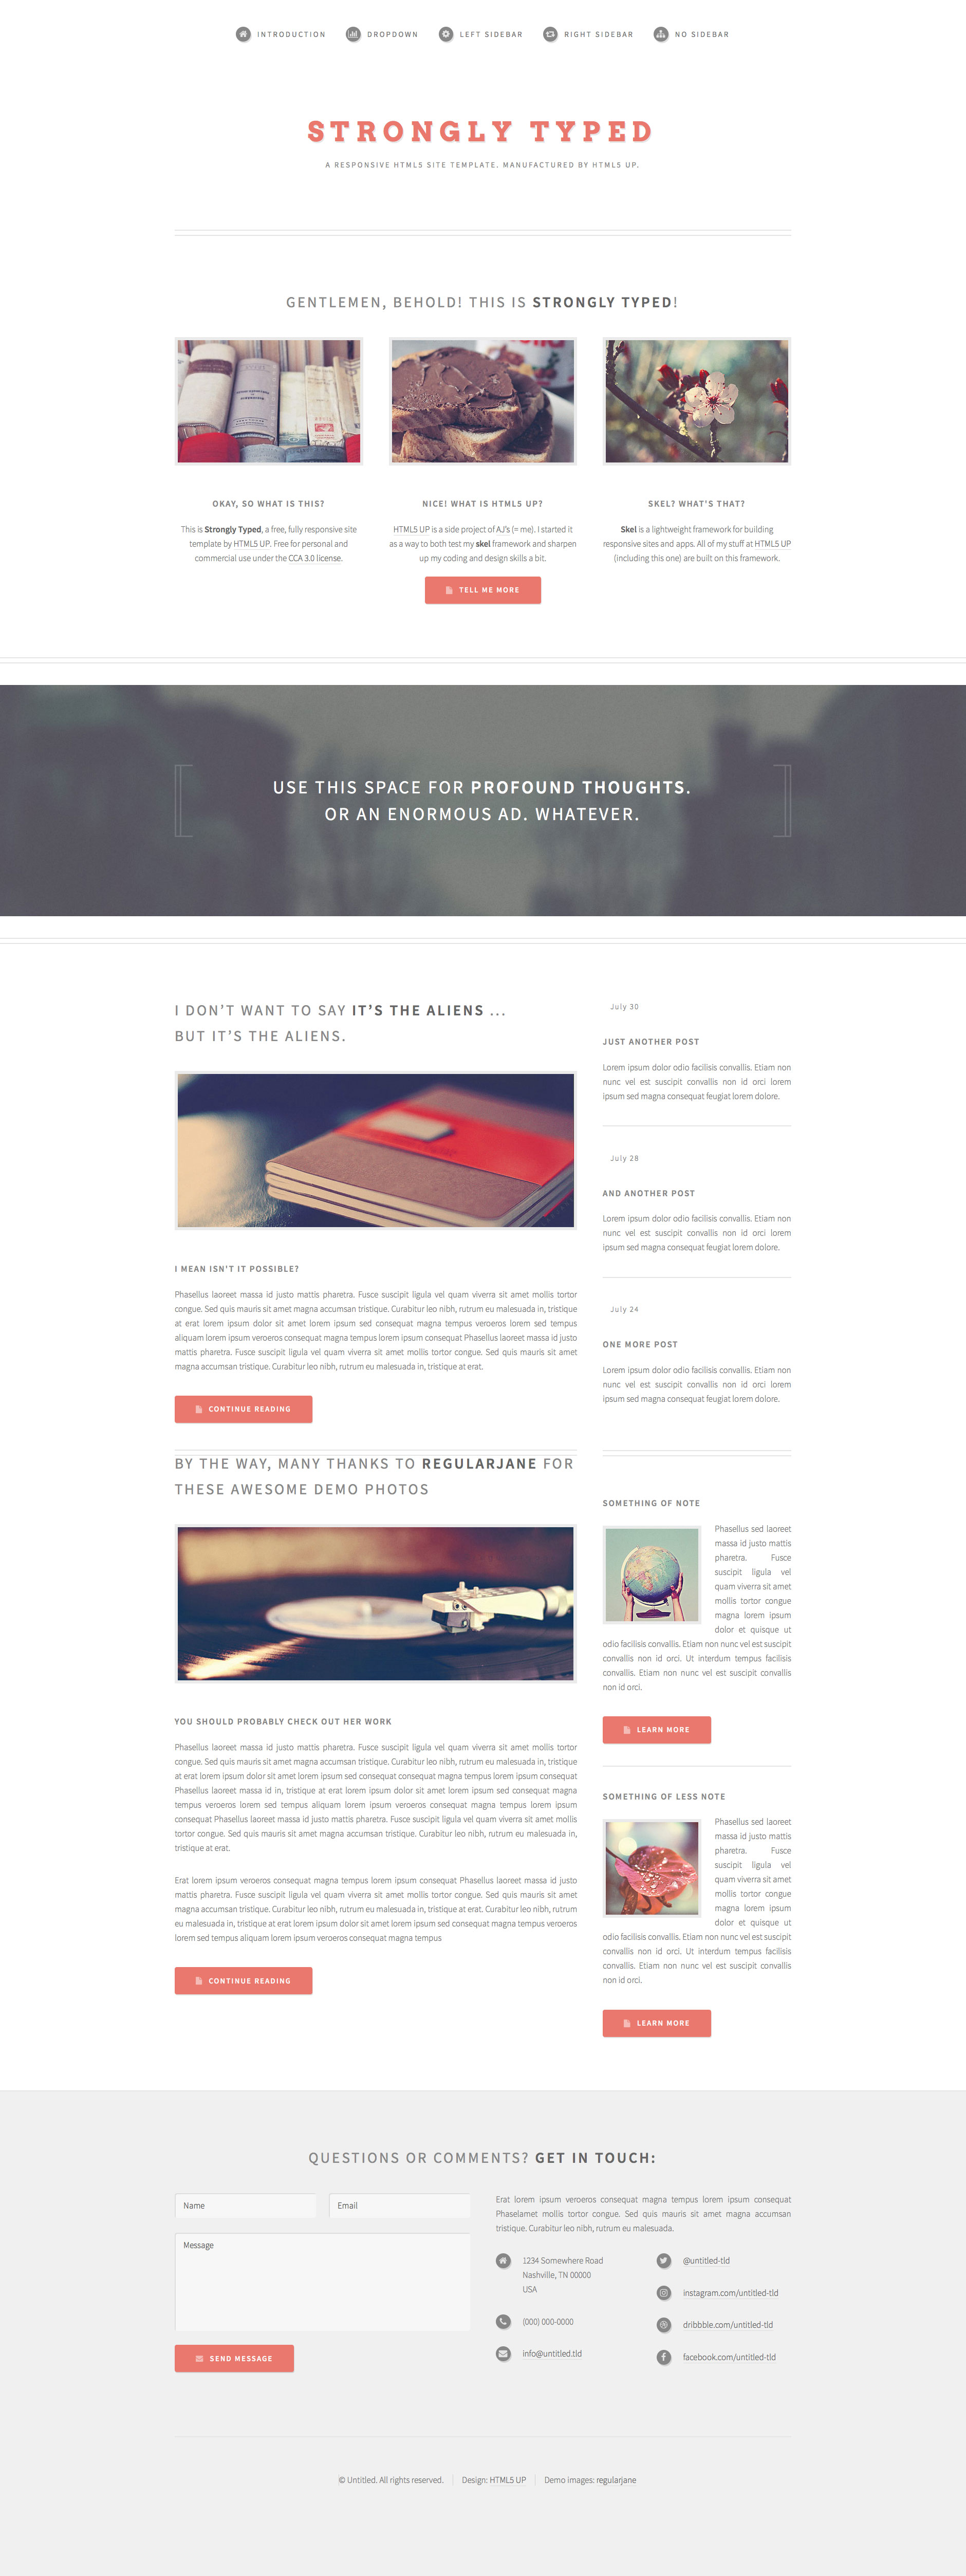 Strongly Typed is a free responsive HTML5 personal website template with a minimal, semi-retrolook (inspired by old instruction manuals). It's fully responsive, built on HTML5 and CSS3, and includes styling for all basic page elements.